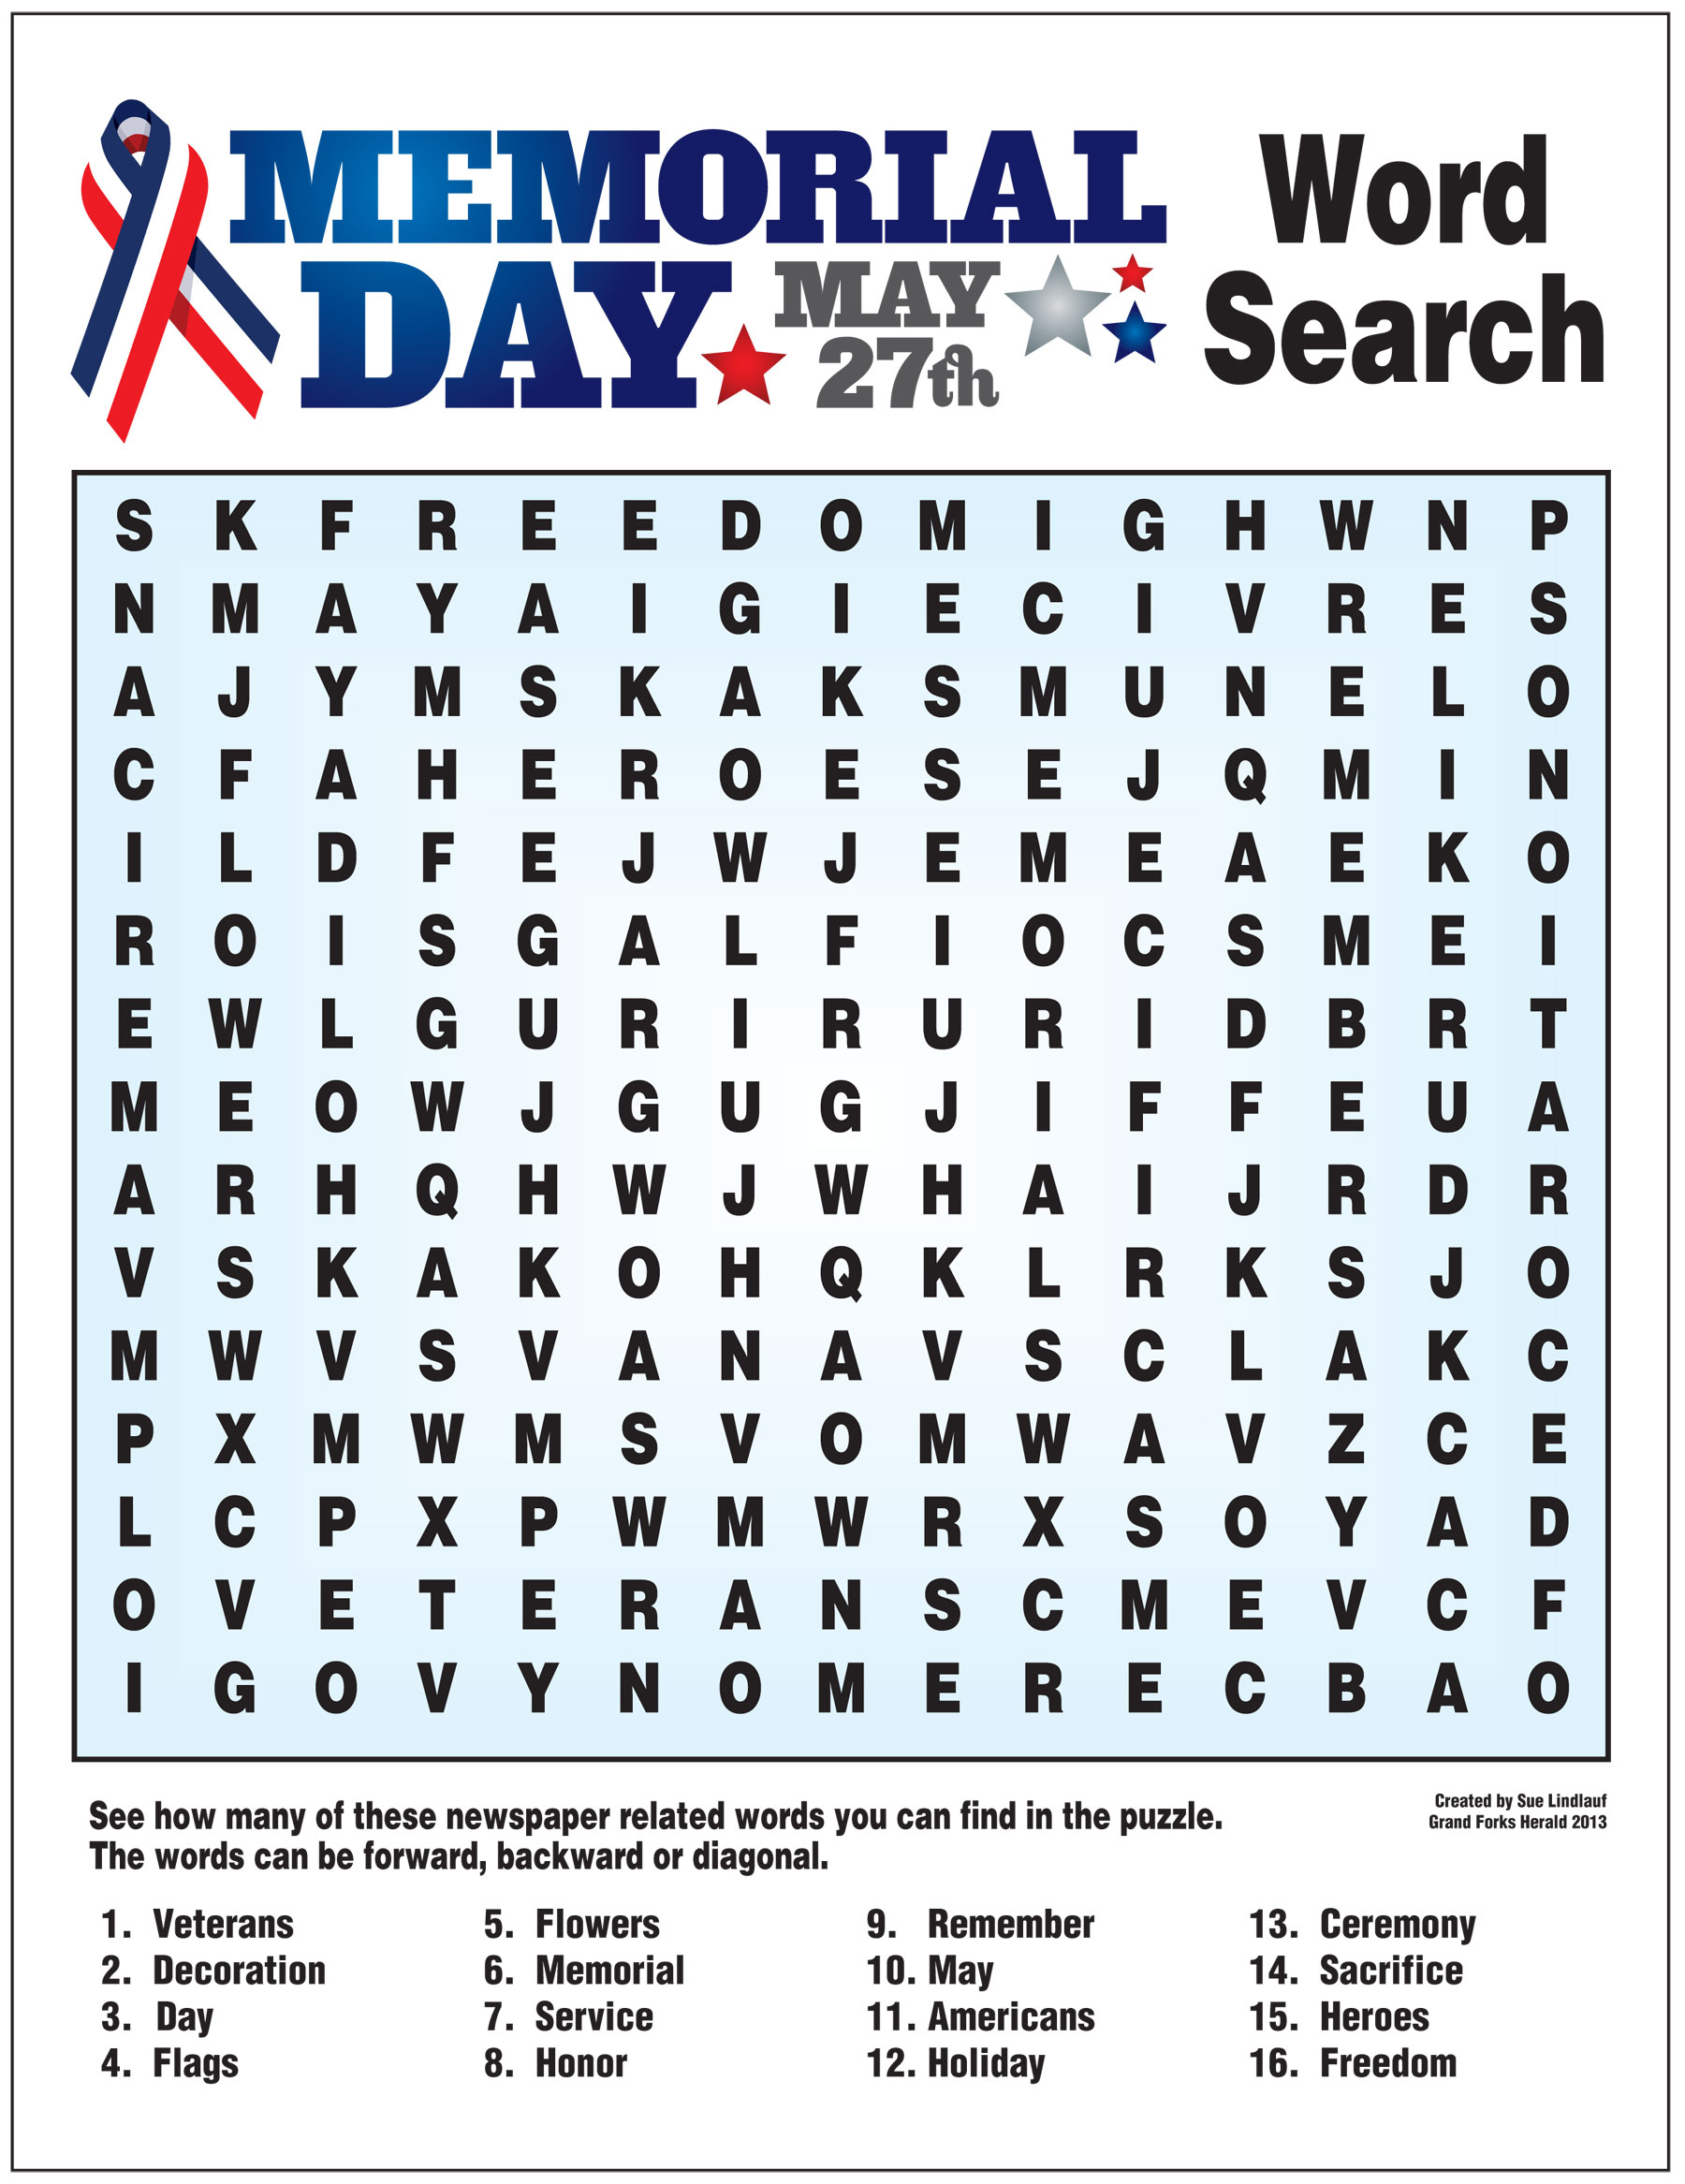 Memorial Day - Lessons - Tes Teach - Memorial Day Crossword Puzzle Printable